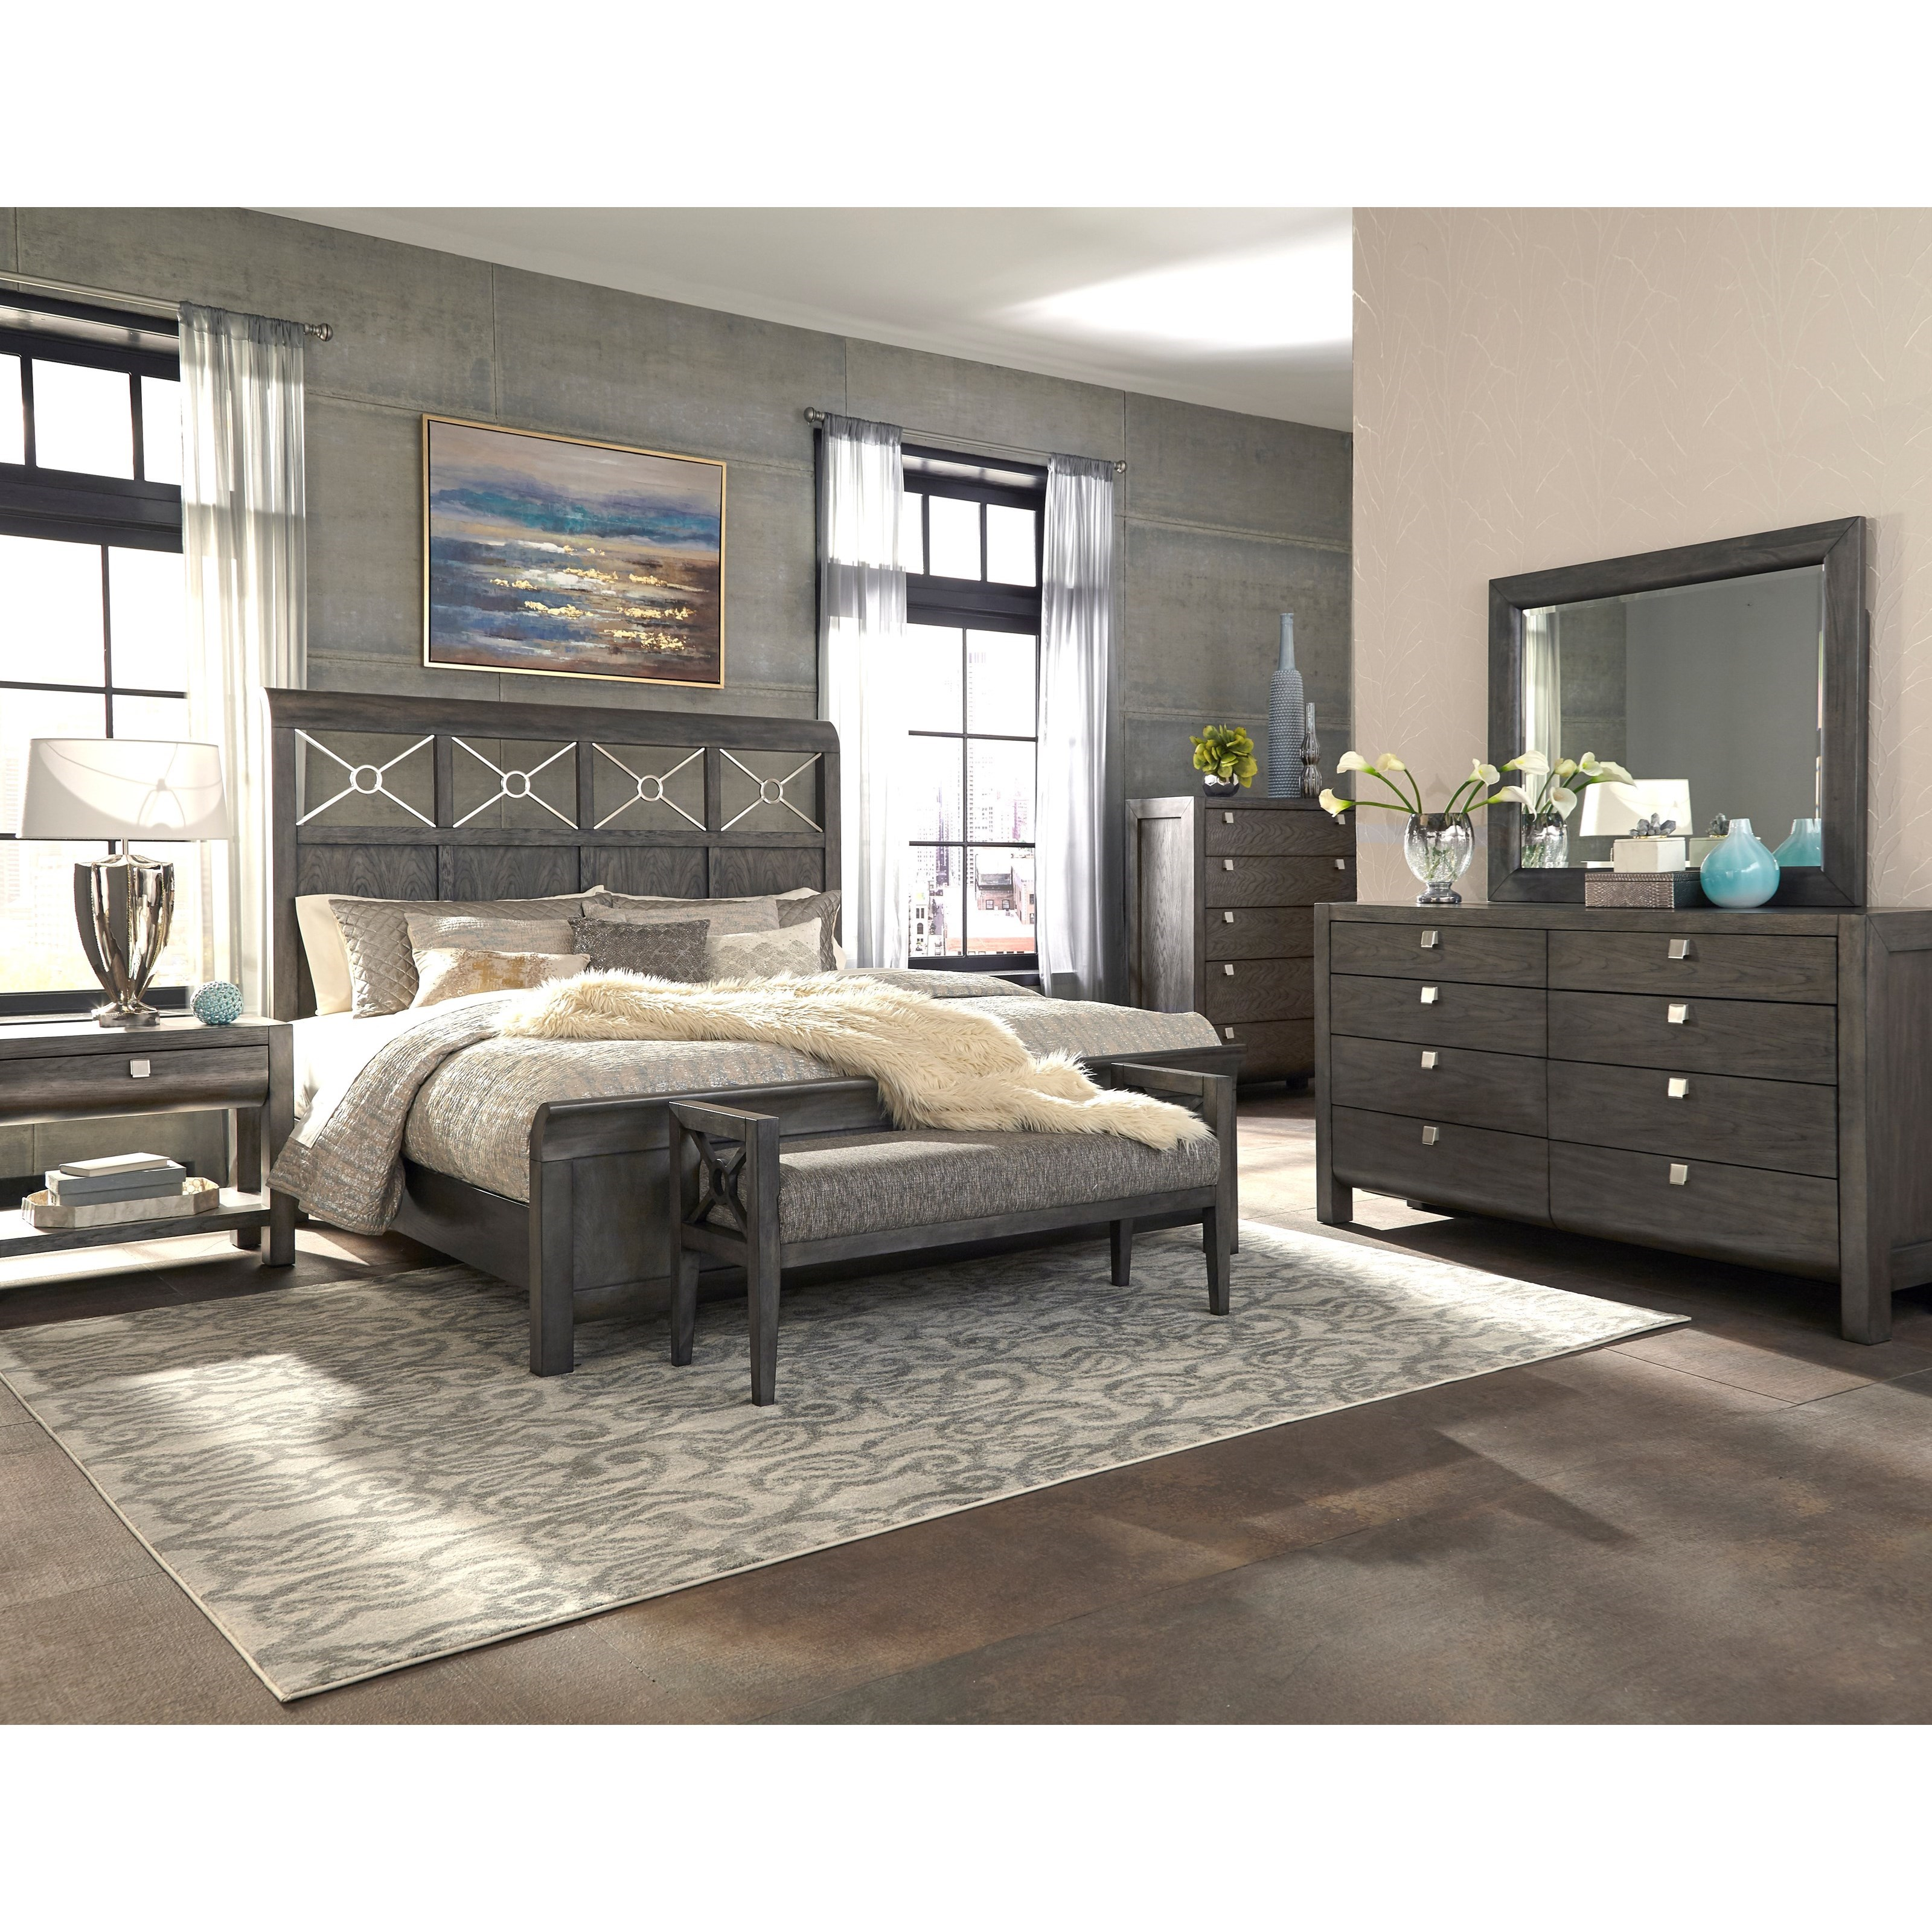 cincinnati firm mattress t northern furniture products mattresses ohio lake ept dayton bedroom columbus cushion sealy browse hidden twin